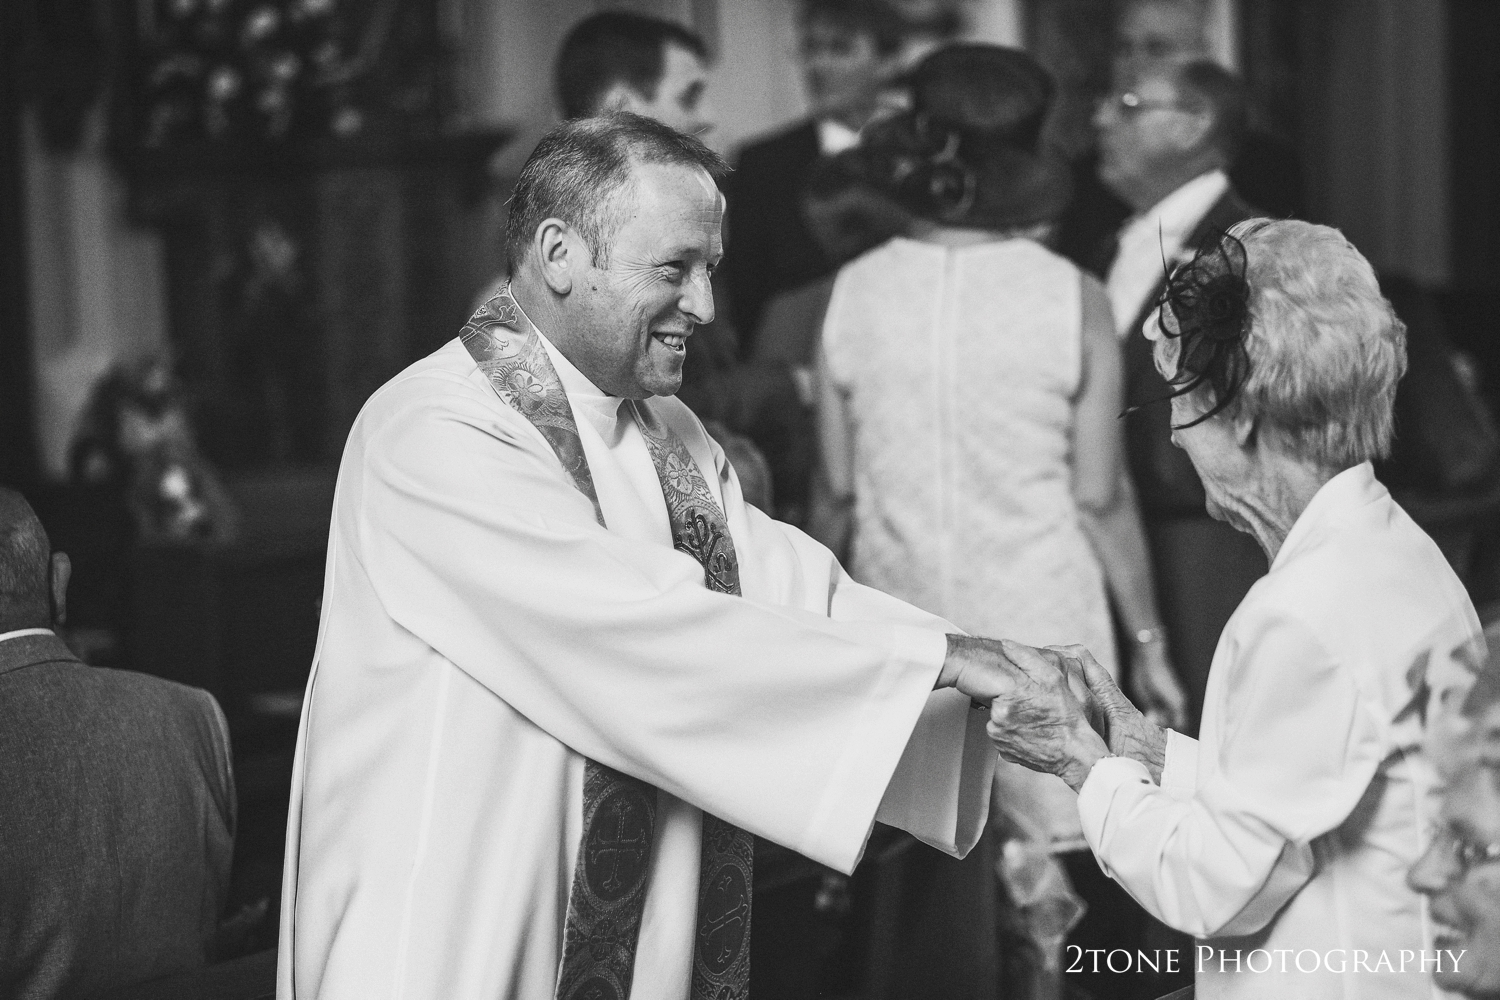 I love this moment, this gesture from the vicar to a member of the family clearly shows how everyone was welcomed open arms into the church.  The atmosphere was warm, inviting and one of love and humility.